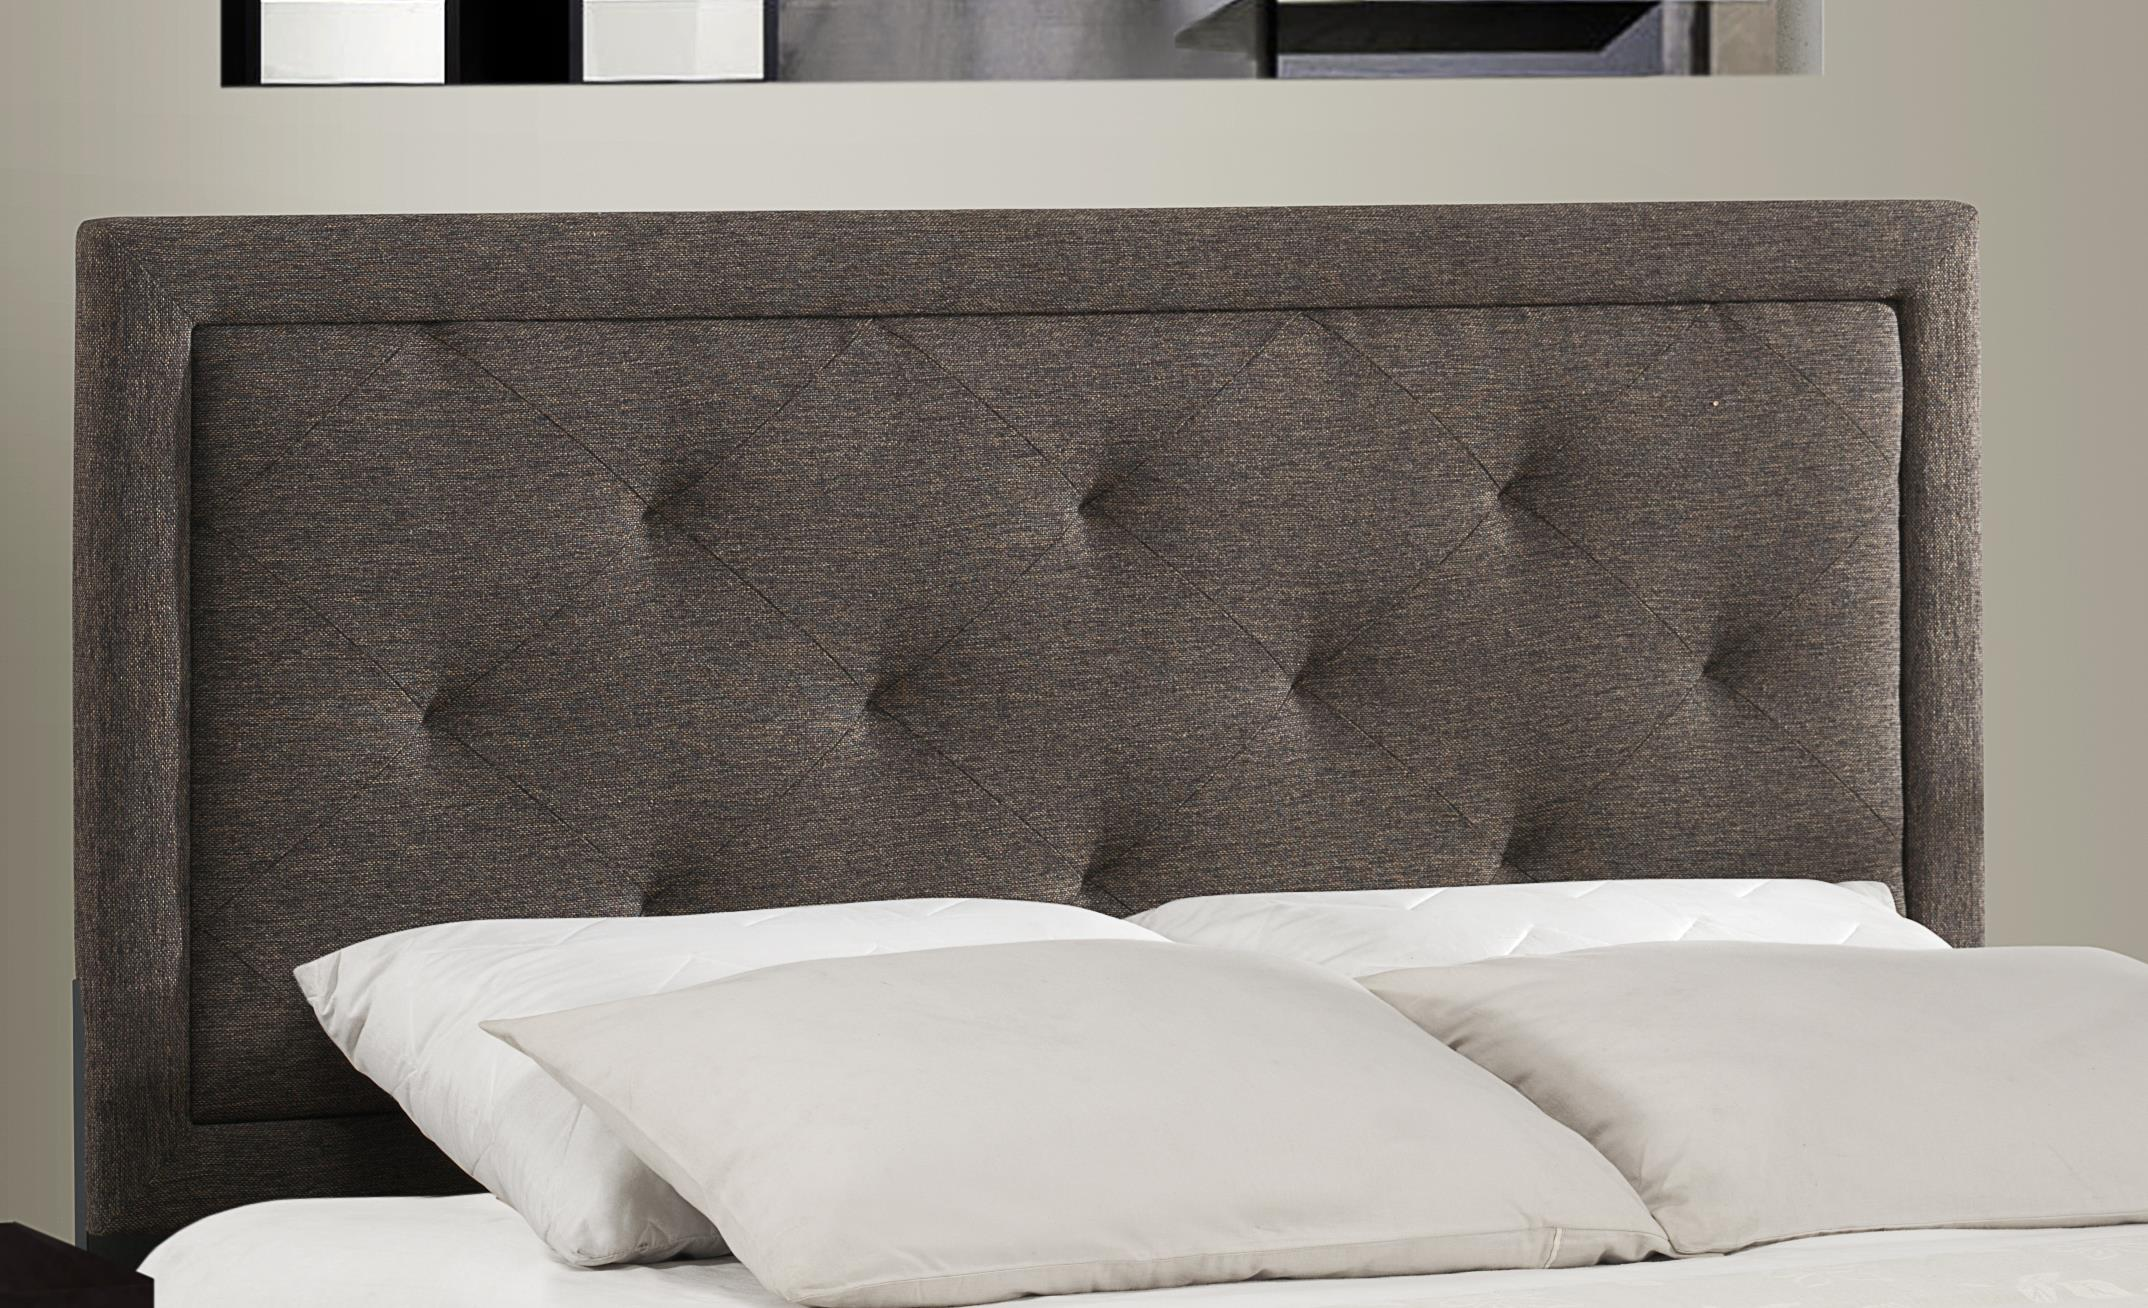 Upholstered Beds Queen Becker Headboard by Hillsdale at Crowley Furniture & Mattress